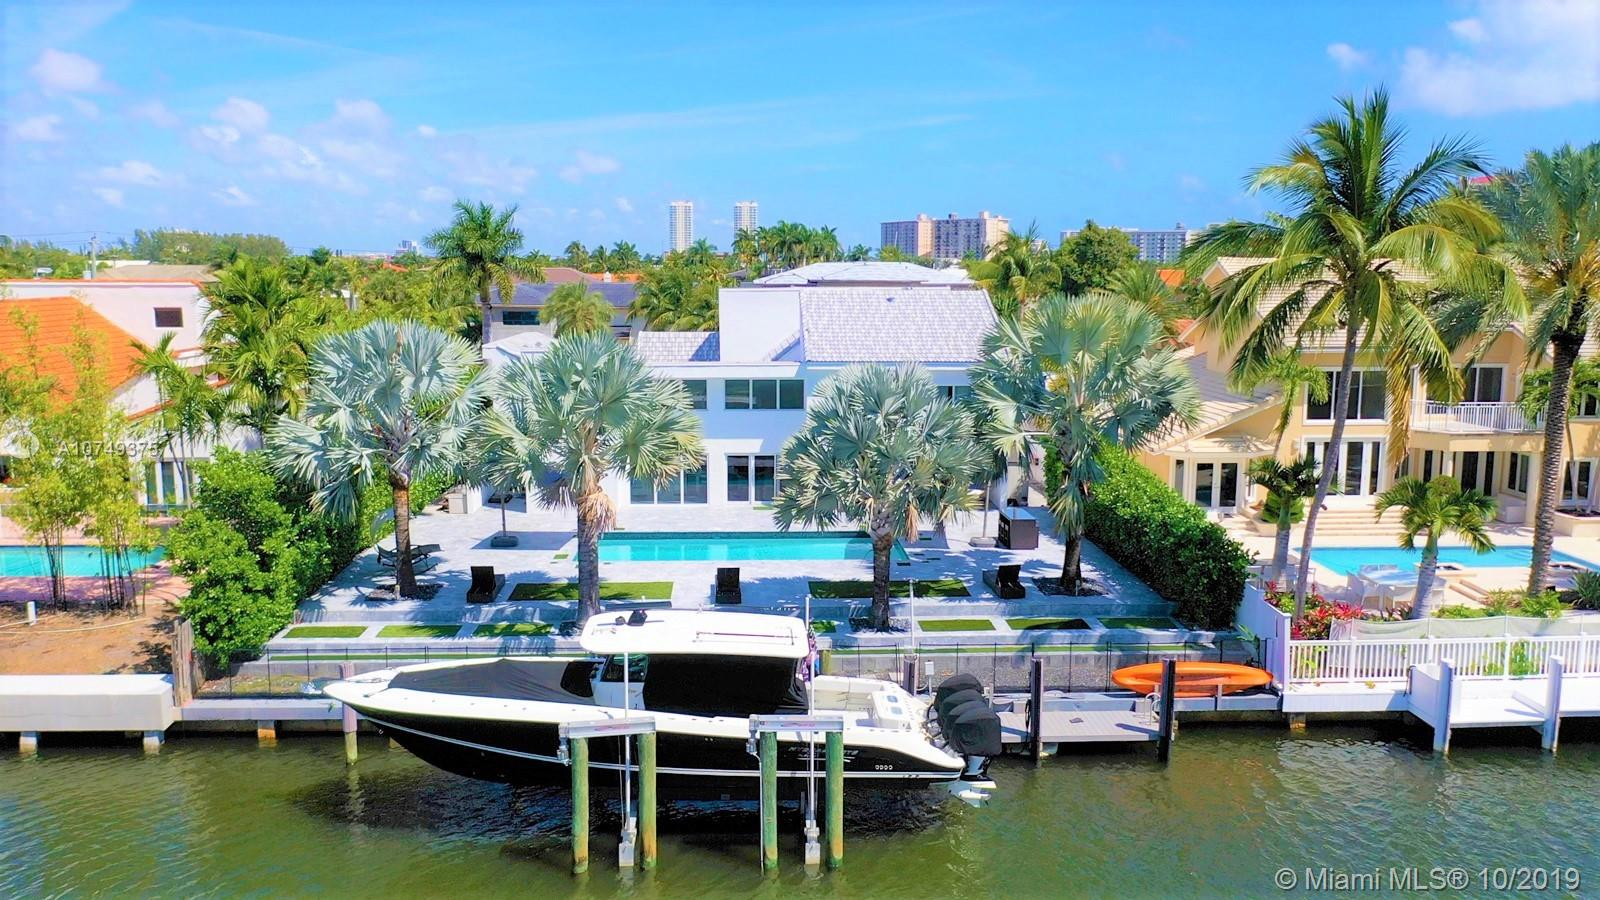 STUNNING COMPLETELY RENOVATED MODERN WATERFRONT HOME IN HIGHLY SOUGHT AFTER GATED GOLDEN ISLES. GATED COMMUNITY W/NO HOA FEES. TOP OF THE LINE FINISHES TO INCLUDE MARBLE FLOORS, GOURMET KITCHEN, SUB ZERO APPLIANCES WITH A BEAUTIFUL CENTRAL ATRIUM BRINGING LIGHT THROUGHOUT THE HOME. PROPERTY EXEMPLIFIES SOUTH FLORIDA LIVING, PERFECT FOR INDOOR/OUTDOOR ENTERTAINING. FLOOR TO CEILING GLASS, 85FT OF WATERFRONT/PRIVATE DOCK/SALINE POOL/THEATRE ROOM/SECURITY SYSTEM/CAMERAS/HOME SURROUND SOUND SYSTEM/LOW MAINTENANCE LANDSCAPING DESIGN/3 ZONE A/C SYSTEM/IMPACT INSULATED PGT WINDOWS KEEPS HOME COOL & QUIET/WATER EFFICIENCY HIGH PRESSURE TOILET SYSTEM/CLEAR ICE MAKER/HIGH EFFICIENCY LARGE CAPACITY FRONT LOAD W&D/OCEAN ACCESS W/NO FIXED BRIDGES. A MUST-SEE PROPERTY. TEXT FOR APPT-SEE BROKERS REMARKS